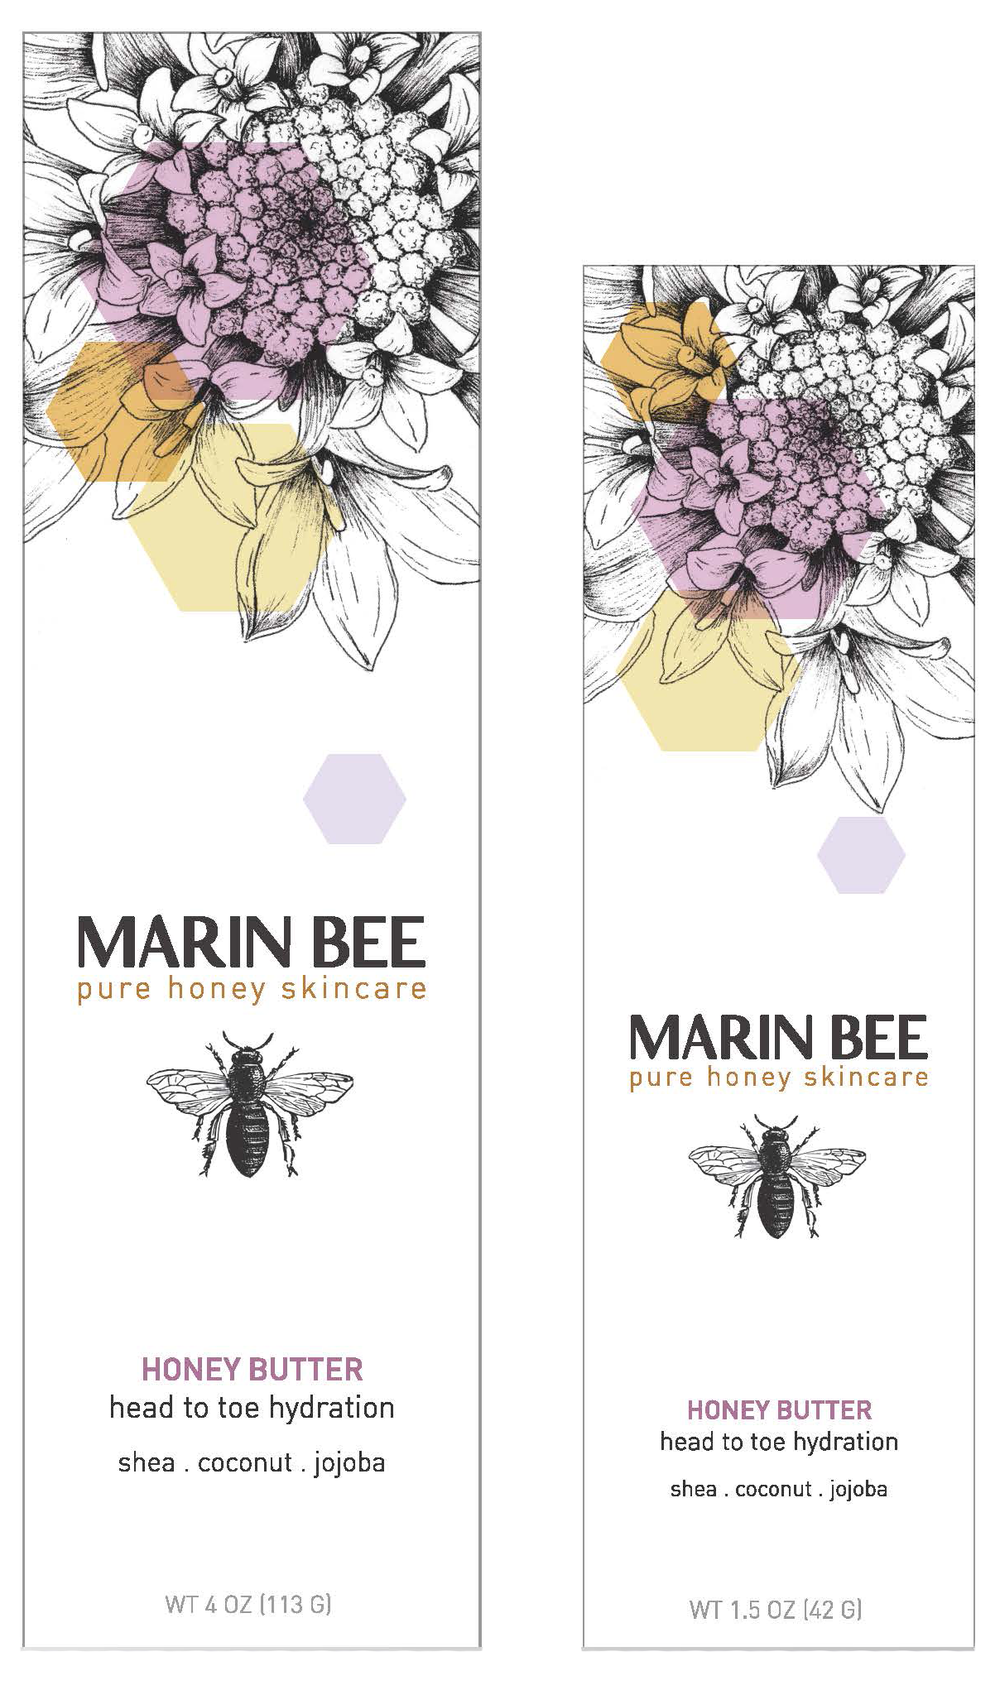 Marin Bee Pure Honey Skincare Honey Butter.png